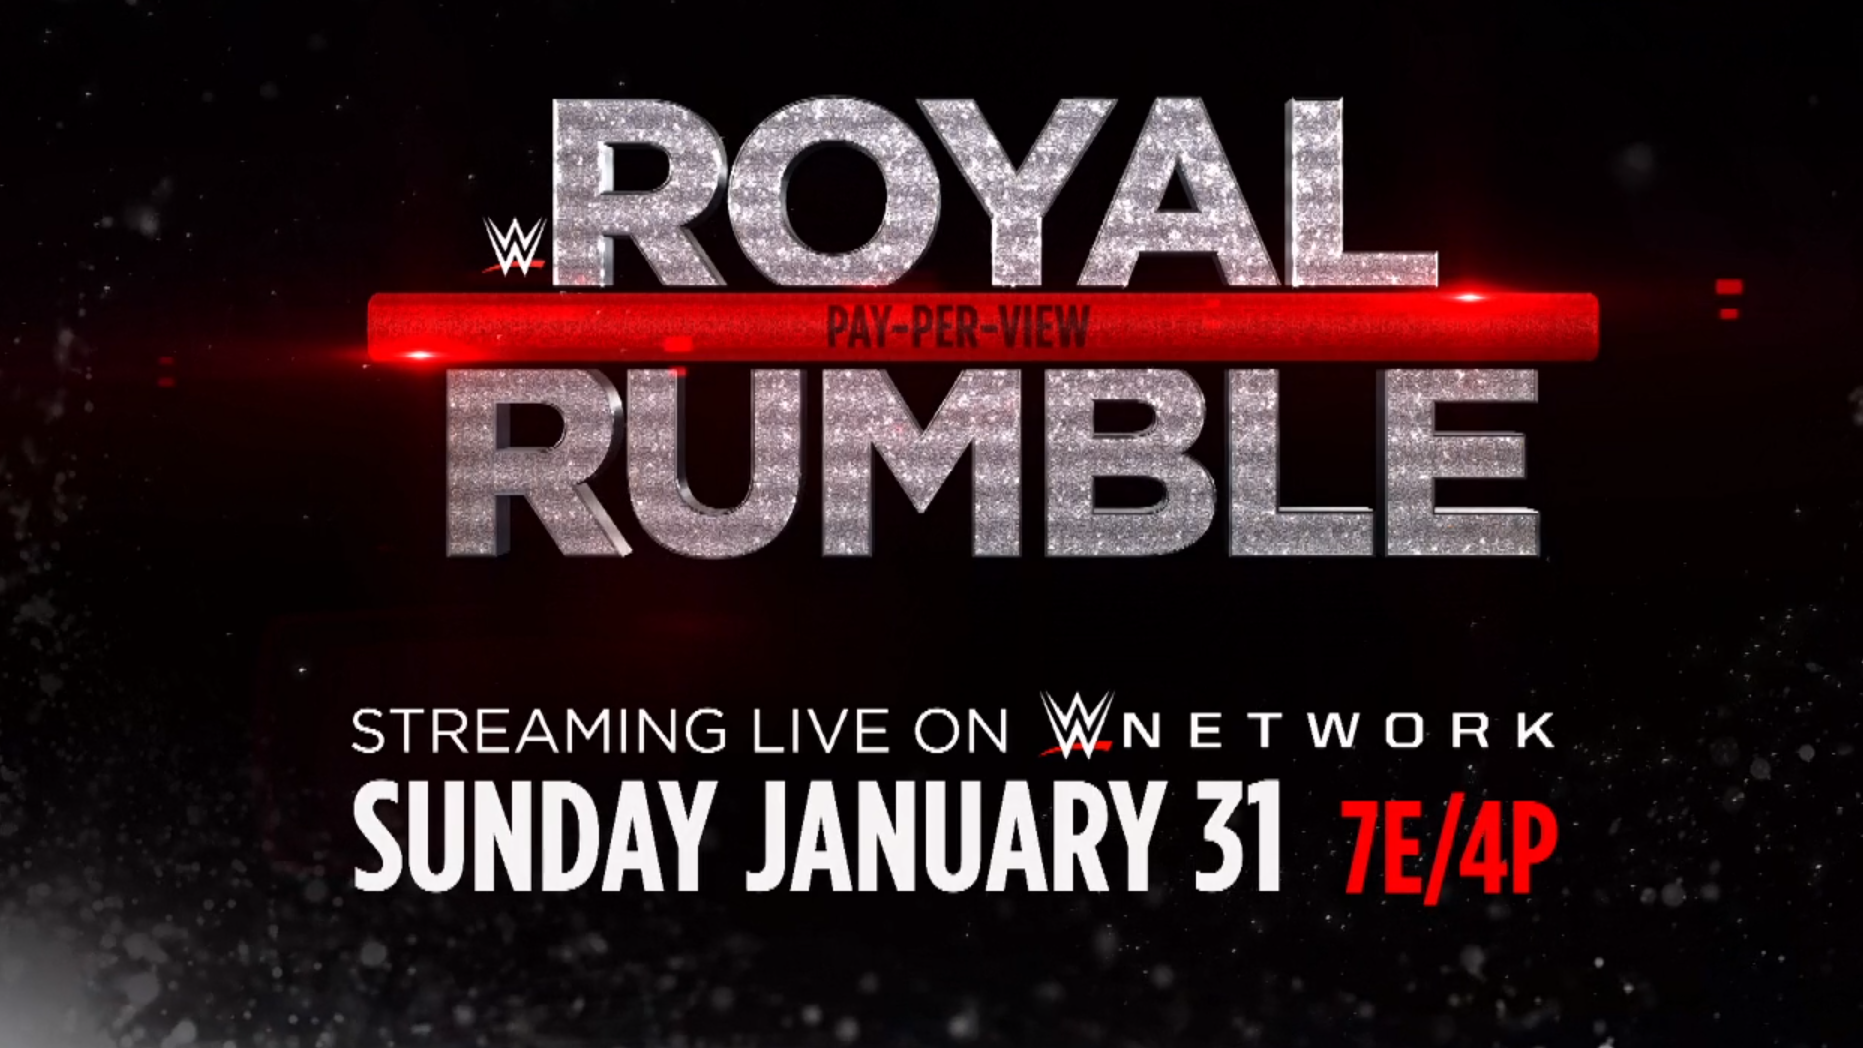 Updated List Of 2021 Wwe Men S Royal Rumble Participants It S Royal Rumble Season In Wwe The Annual Event I In 2021 Wwe Royal Rumble Royal Rumble Womens Royal Rumble